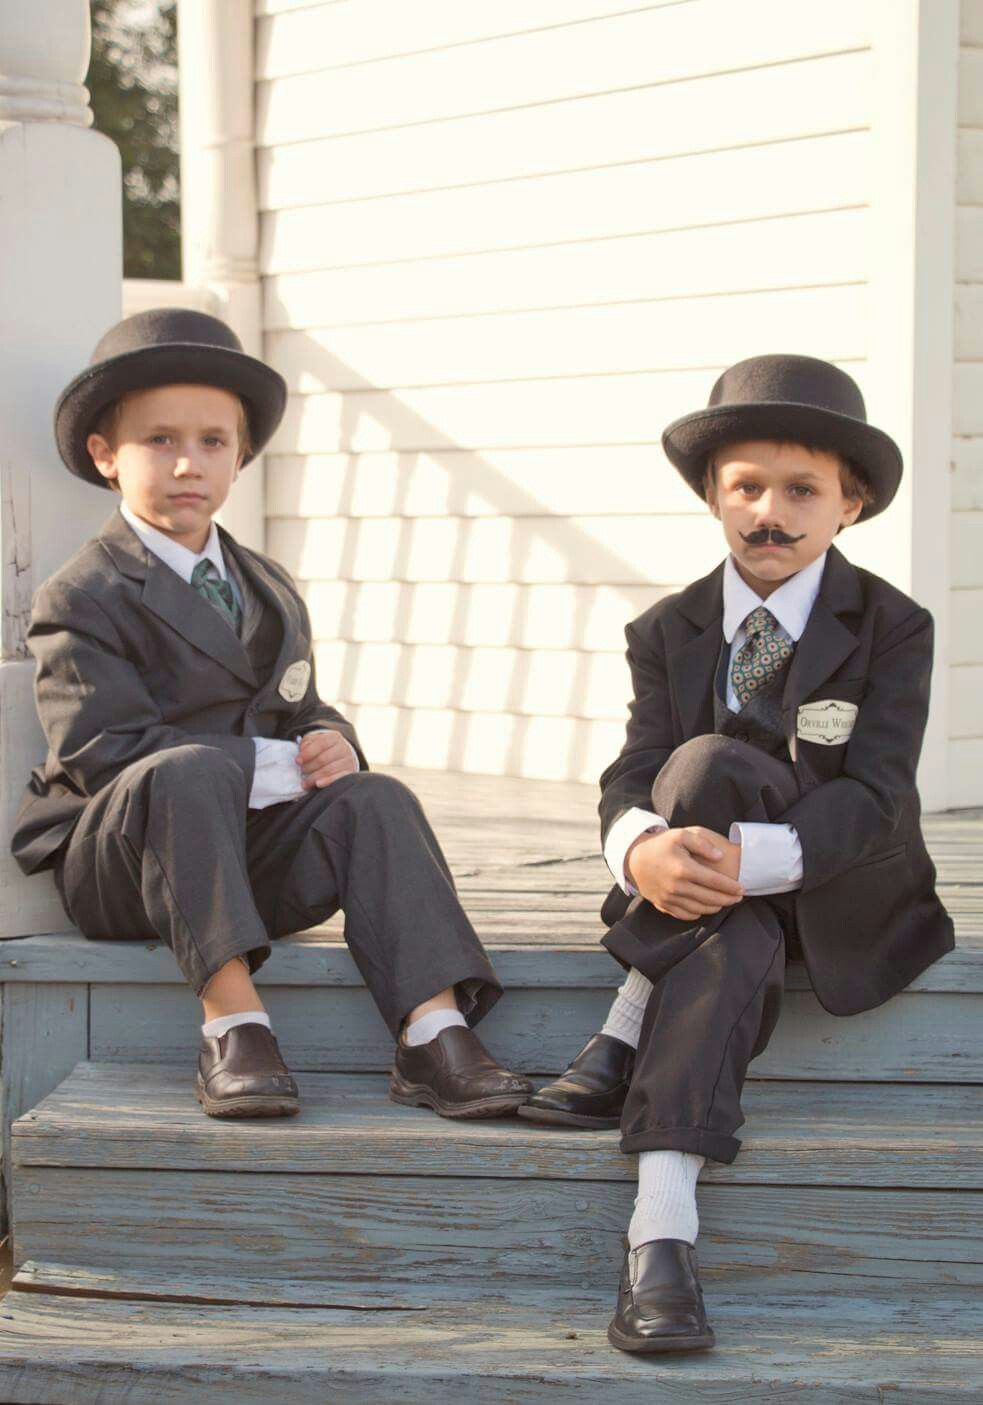 wright brothers halloween costumes - Halloween Costume For Brothers